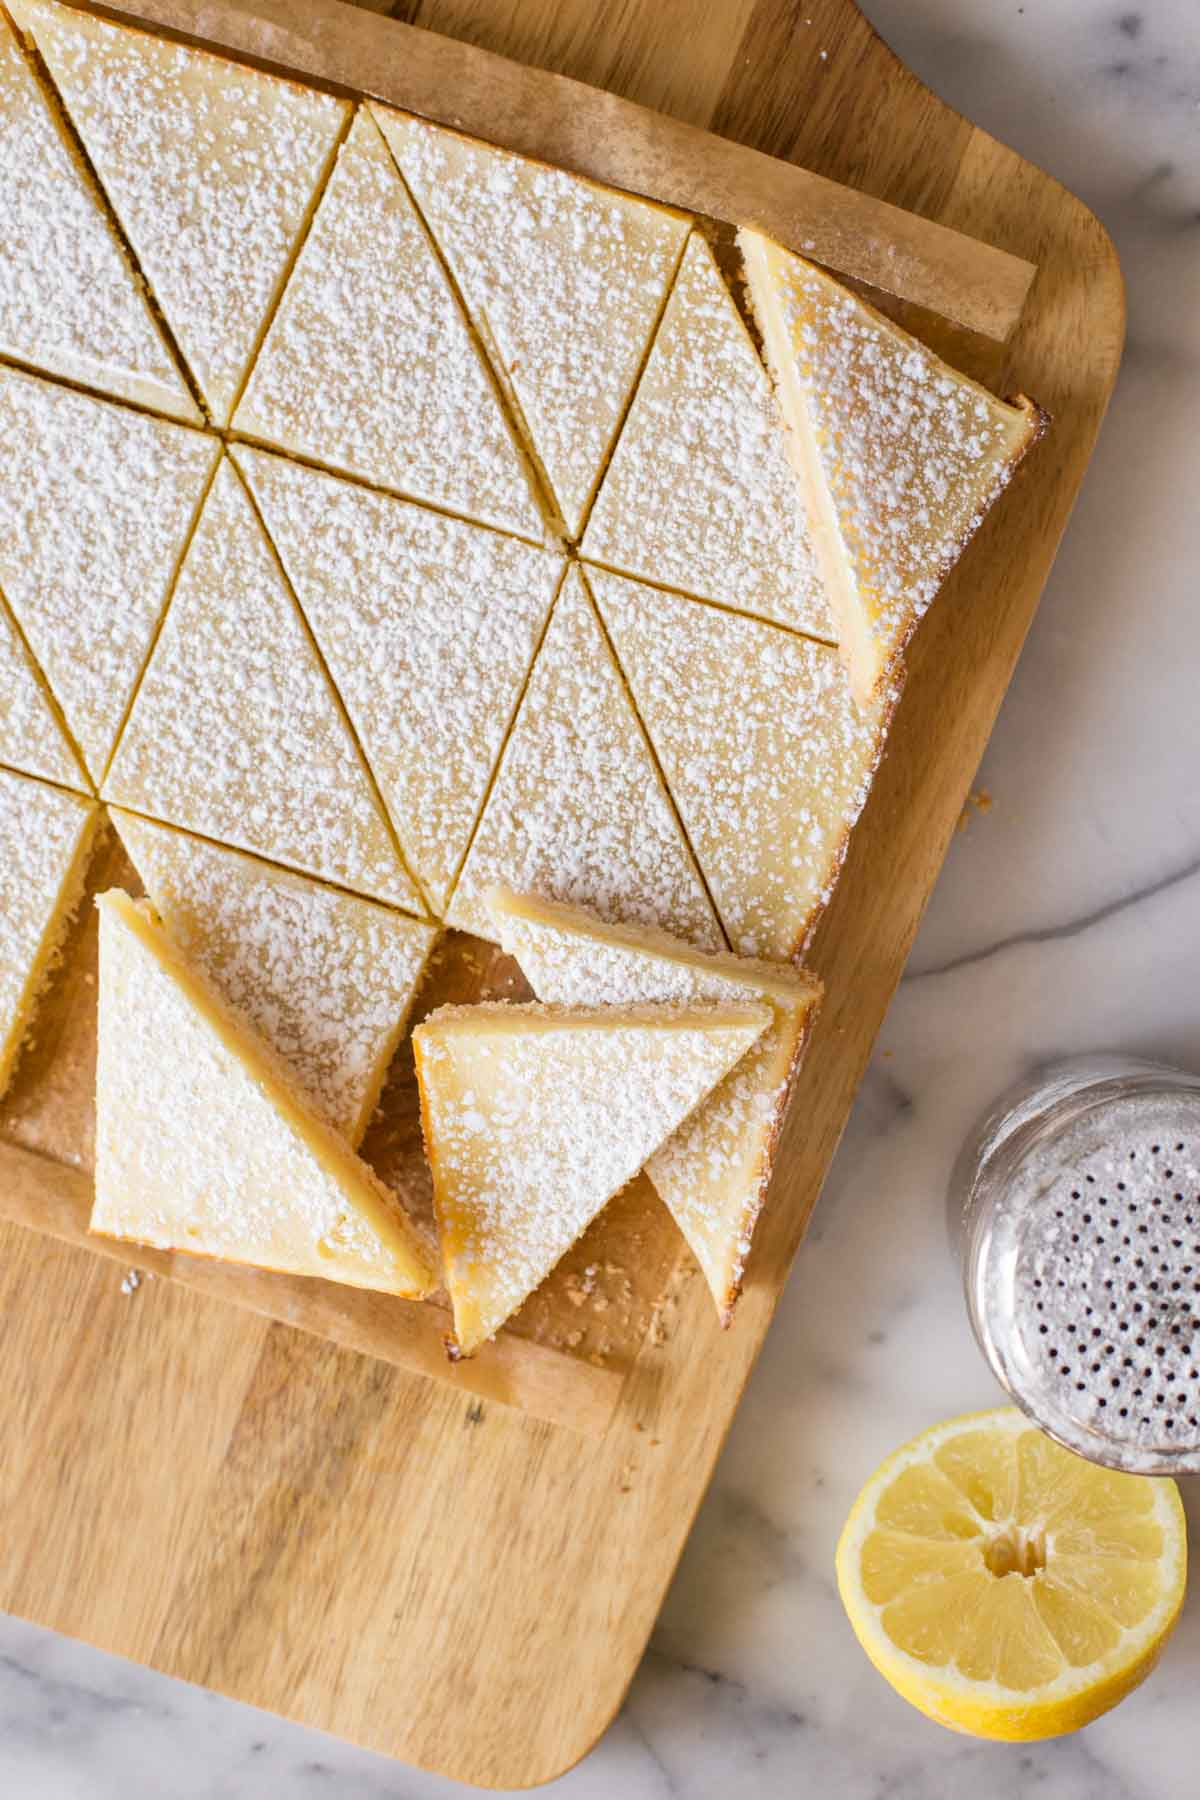 Overhead shot of cut Swedish Lemon Bars on a wooden cutting board.